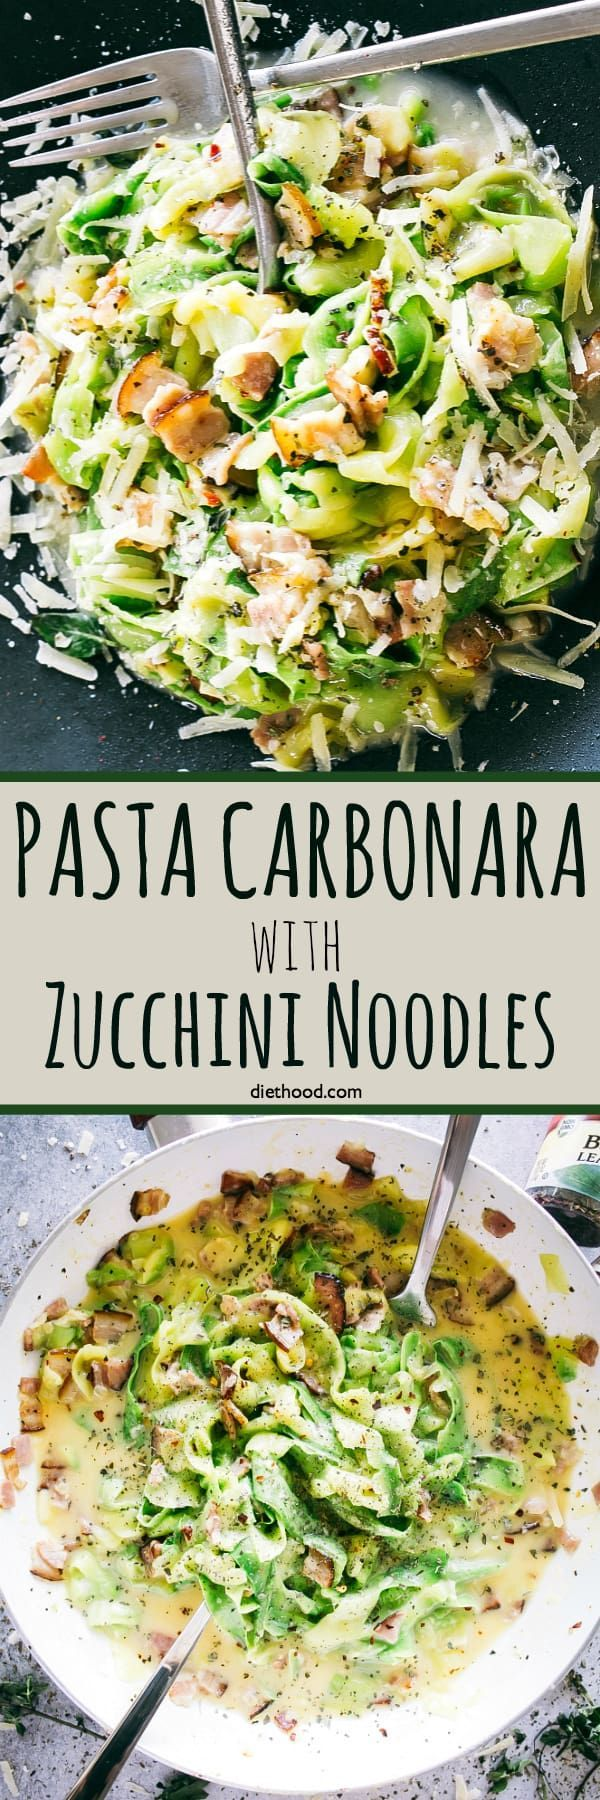 Pasta Carbonara with Zucchini Noodles – Healthy, lightened up version of the classic pasta carbonara prepared with delicious zucchini noodles, pan fried pancetta, and an irresistible creamy parmesan sauce. #zoodles #zucchini #bacon